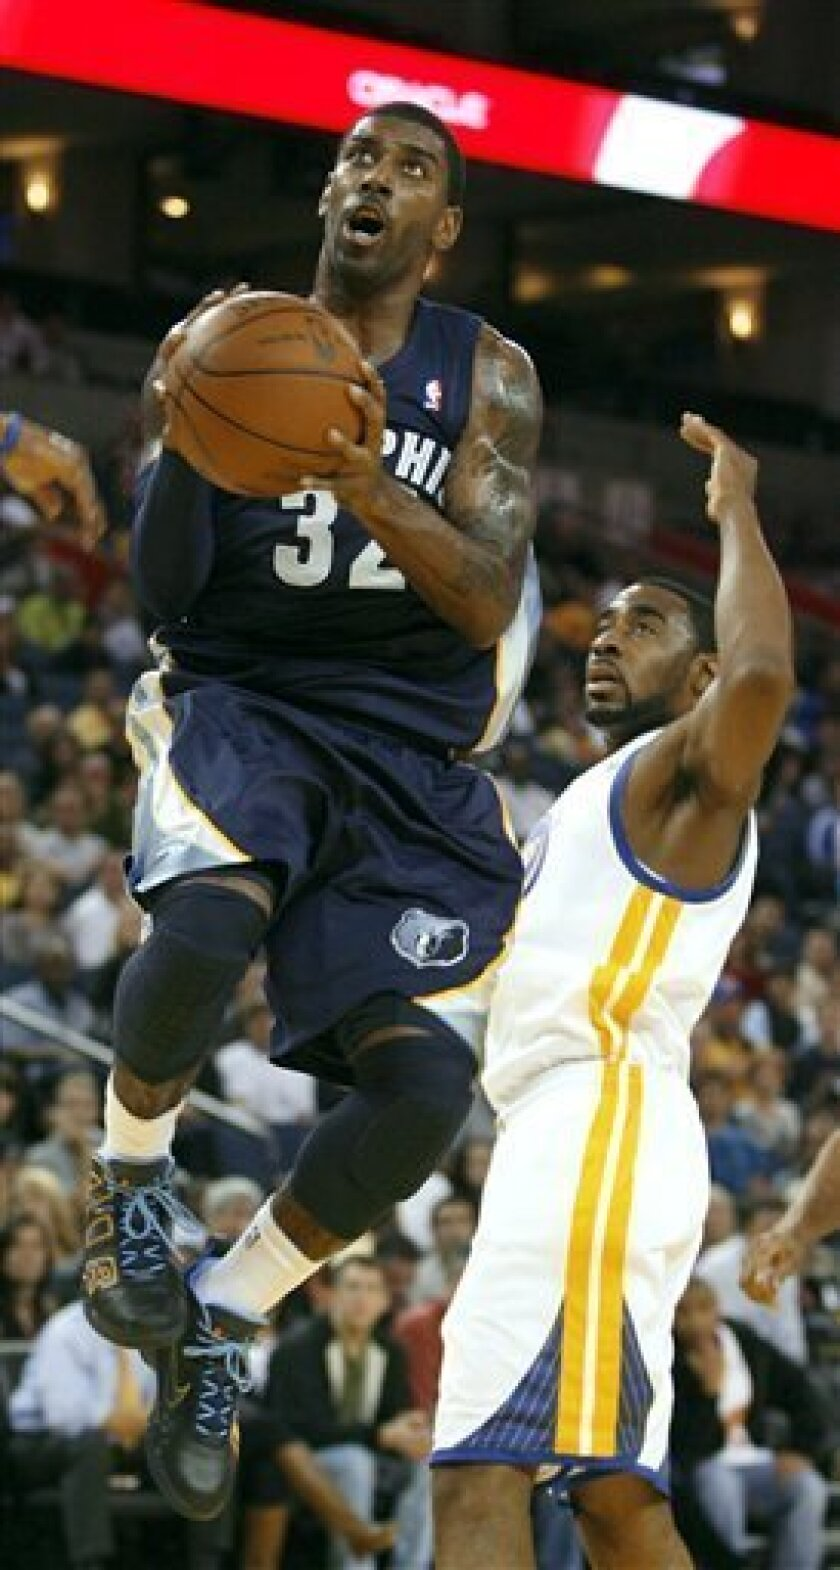 Memphis Grizzlies' O.J. Mayo (32) gets past Golden State Warriors' Reggie Williams and scores in the first half of an NBA basketball game Wednesday, Nov. 3, 2010, in Oakland, Calif. (AP Photo/Dino Vournas)